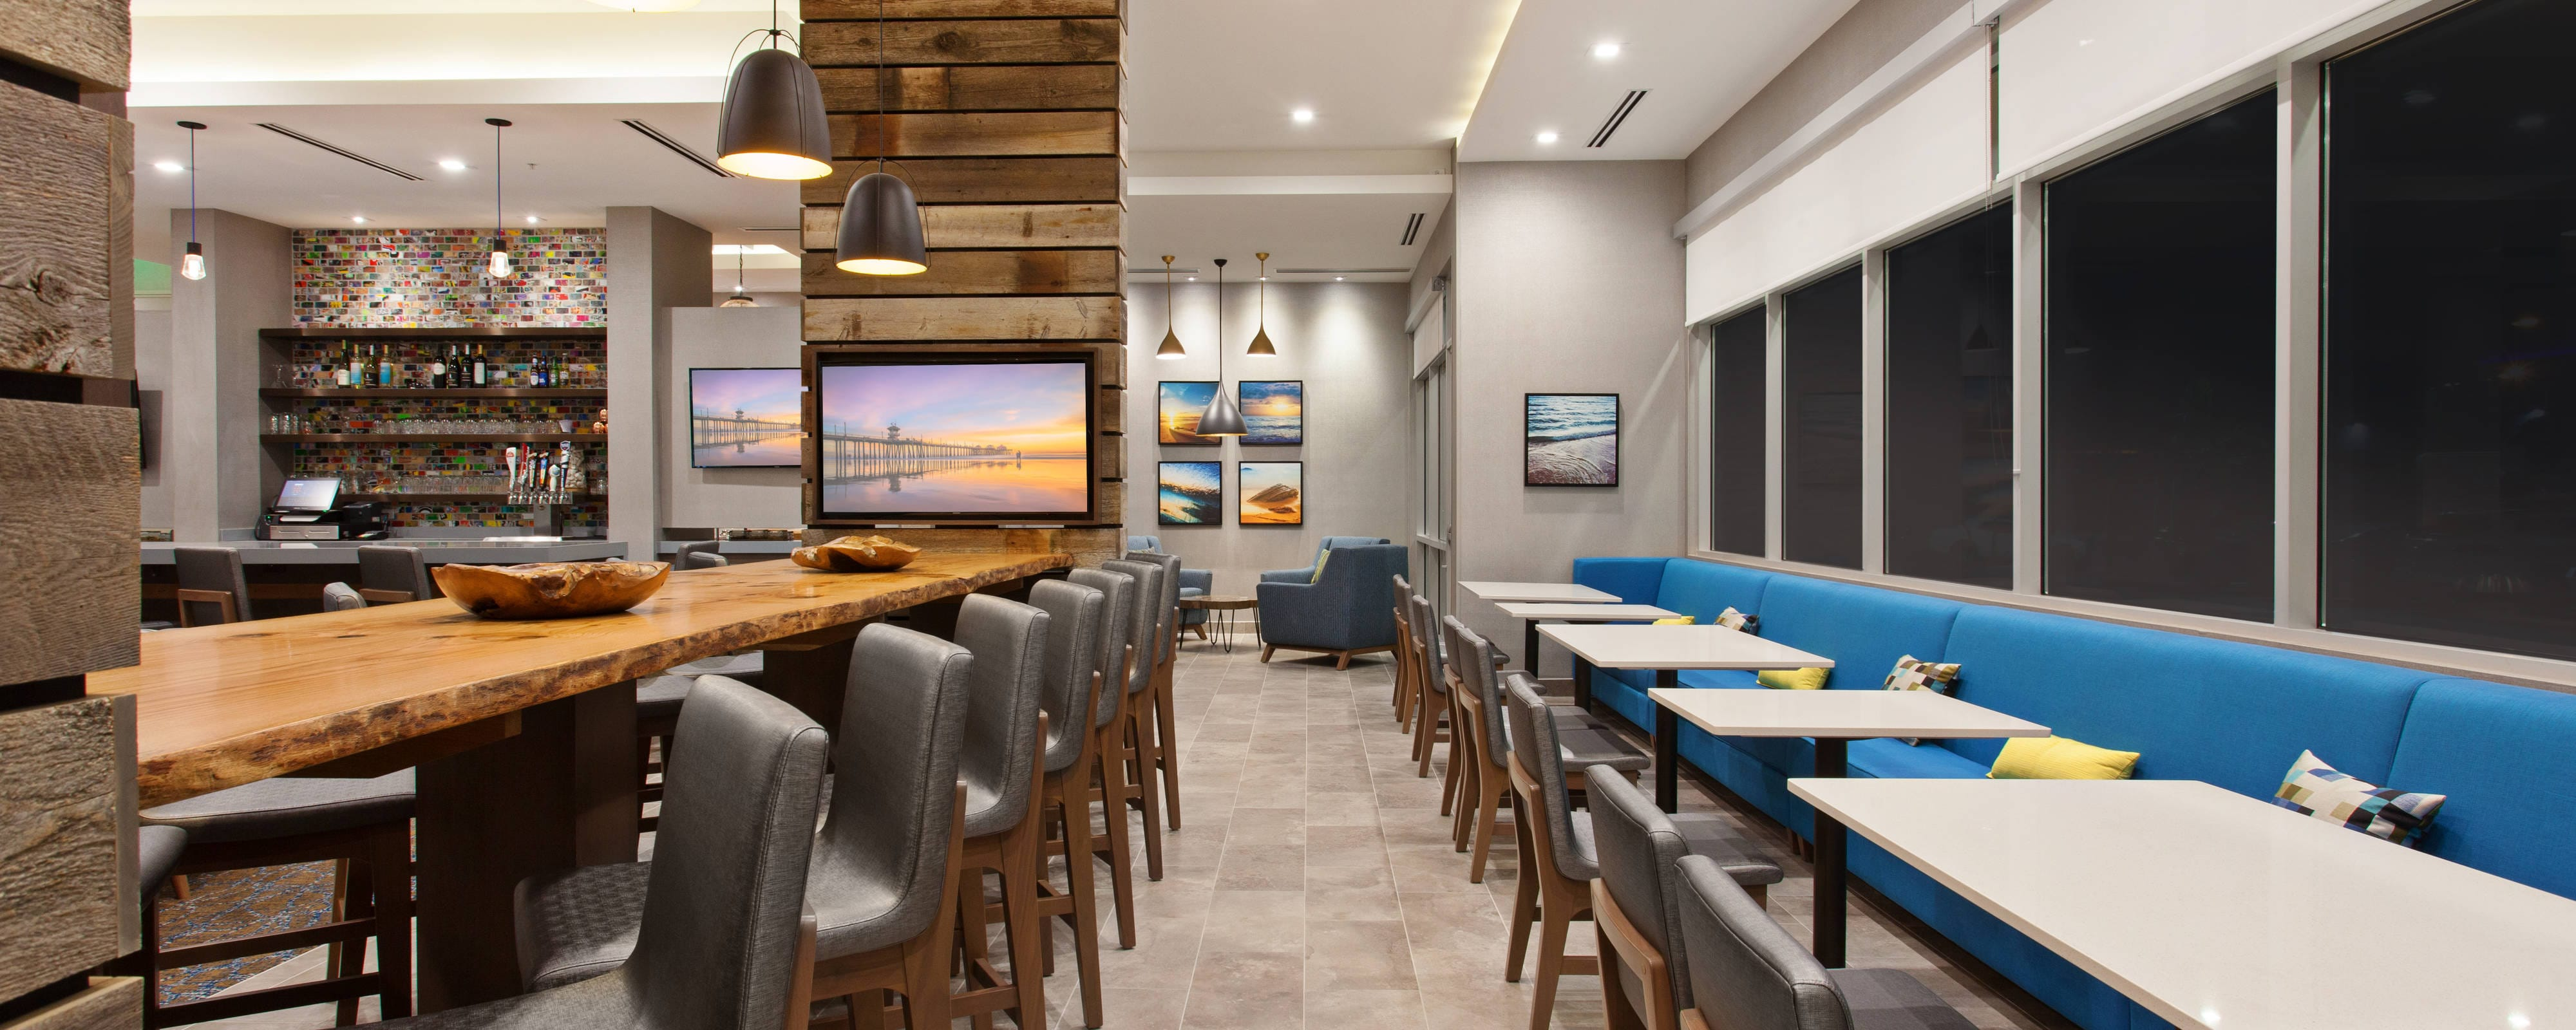 Hotel Dining Restaurants Springhill Suites Huntington Beach Orange County